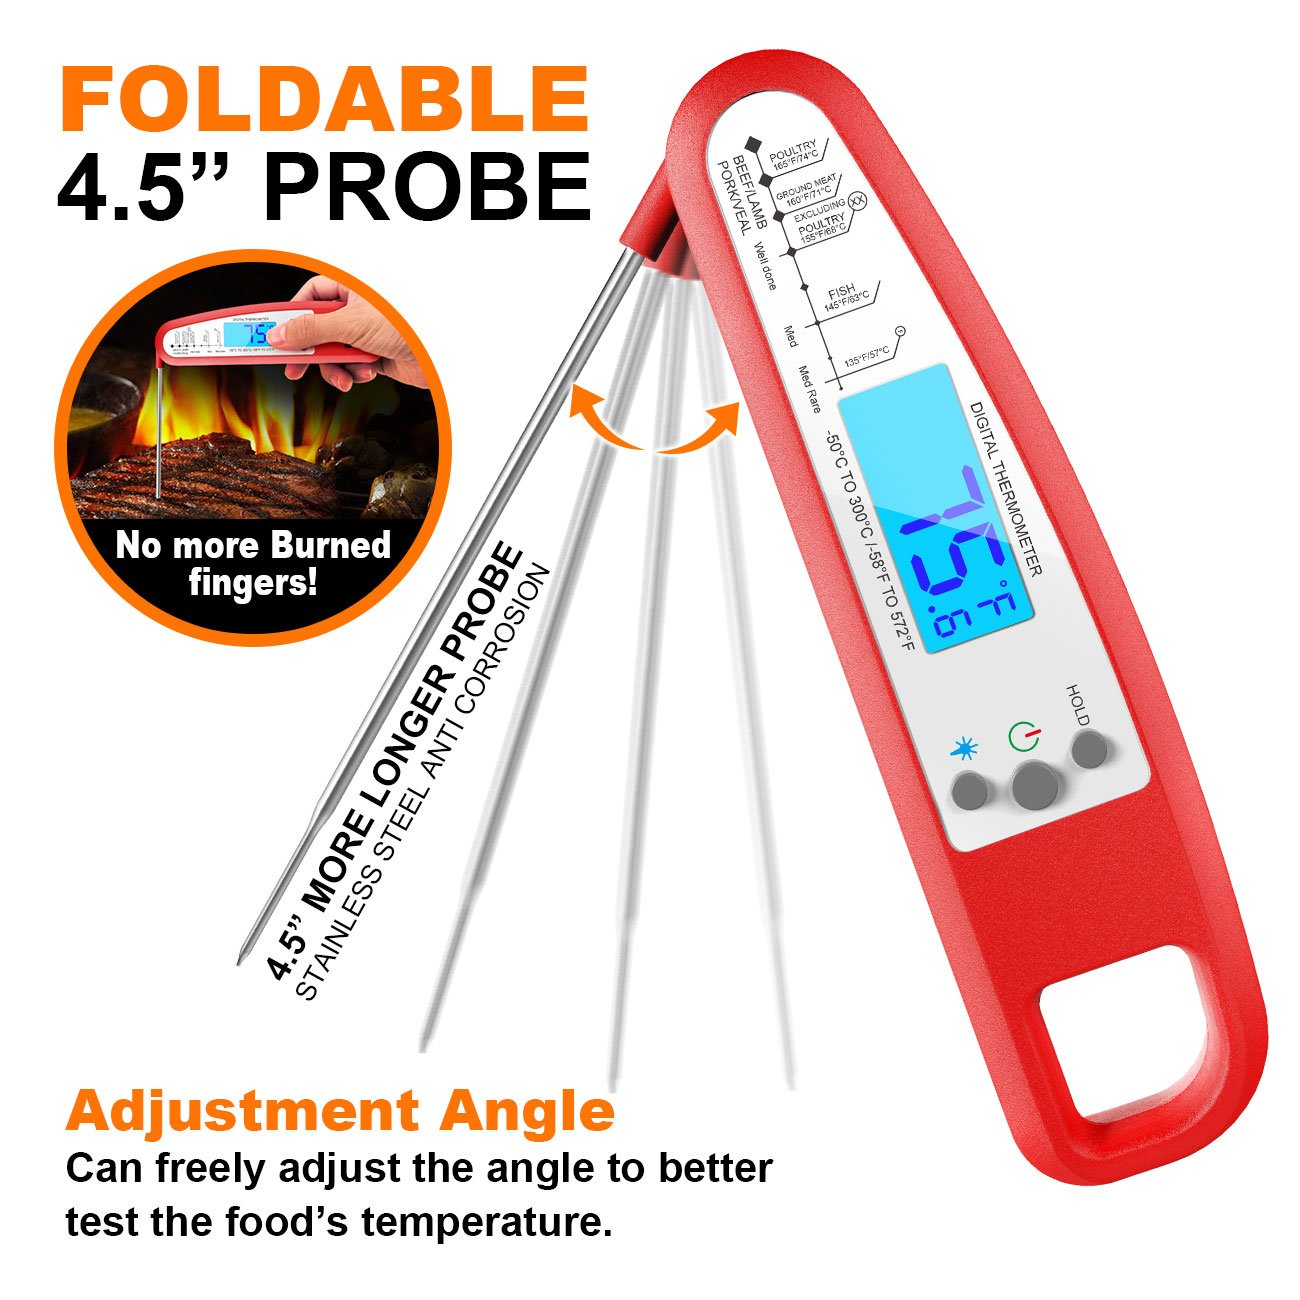 Digital Meat Thermometer, eSamcore Instant Read Cooking Thermometer Fast Accurate Food Thermometer w/ Bright LCD Display for Kitchen BBQ Grill Smoker [Chipotle]